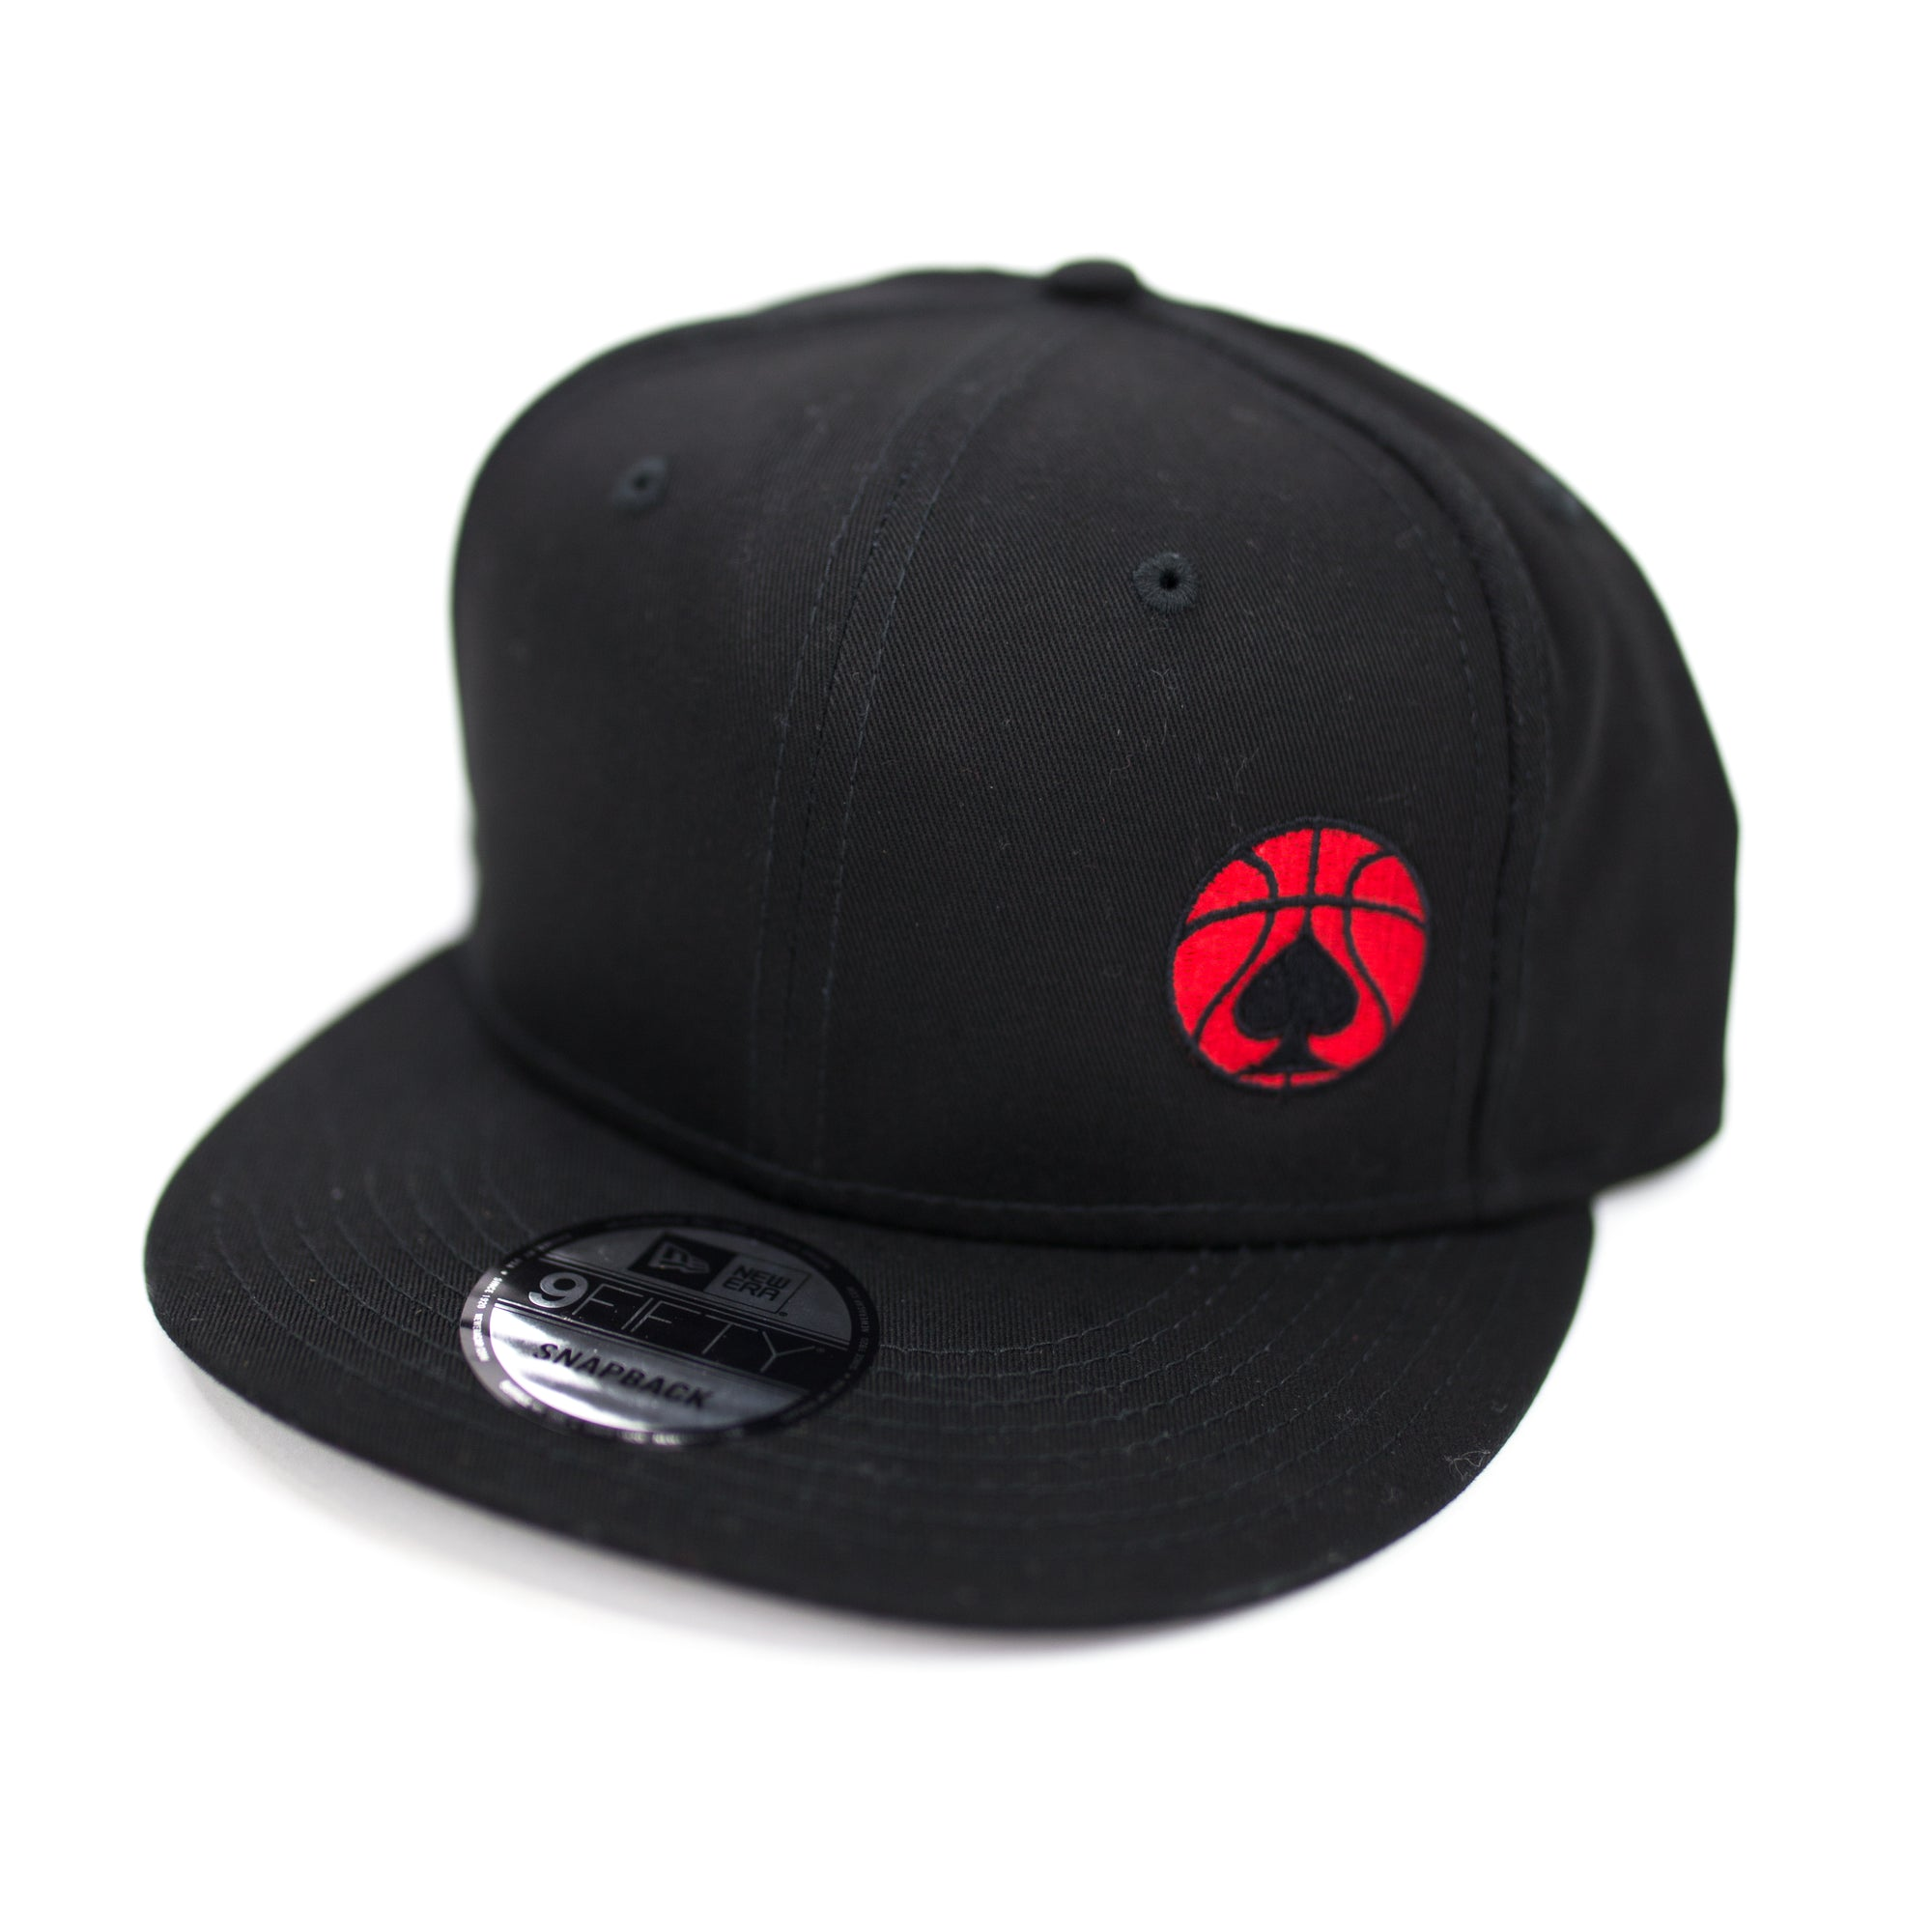 aa7b0e2377e Snapback Hat - Black Ace Family Ball - Shop Ace Family